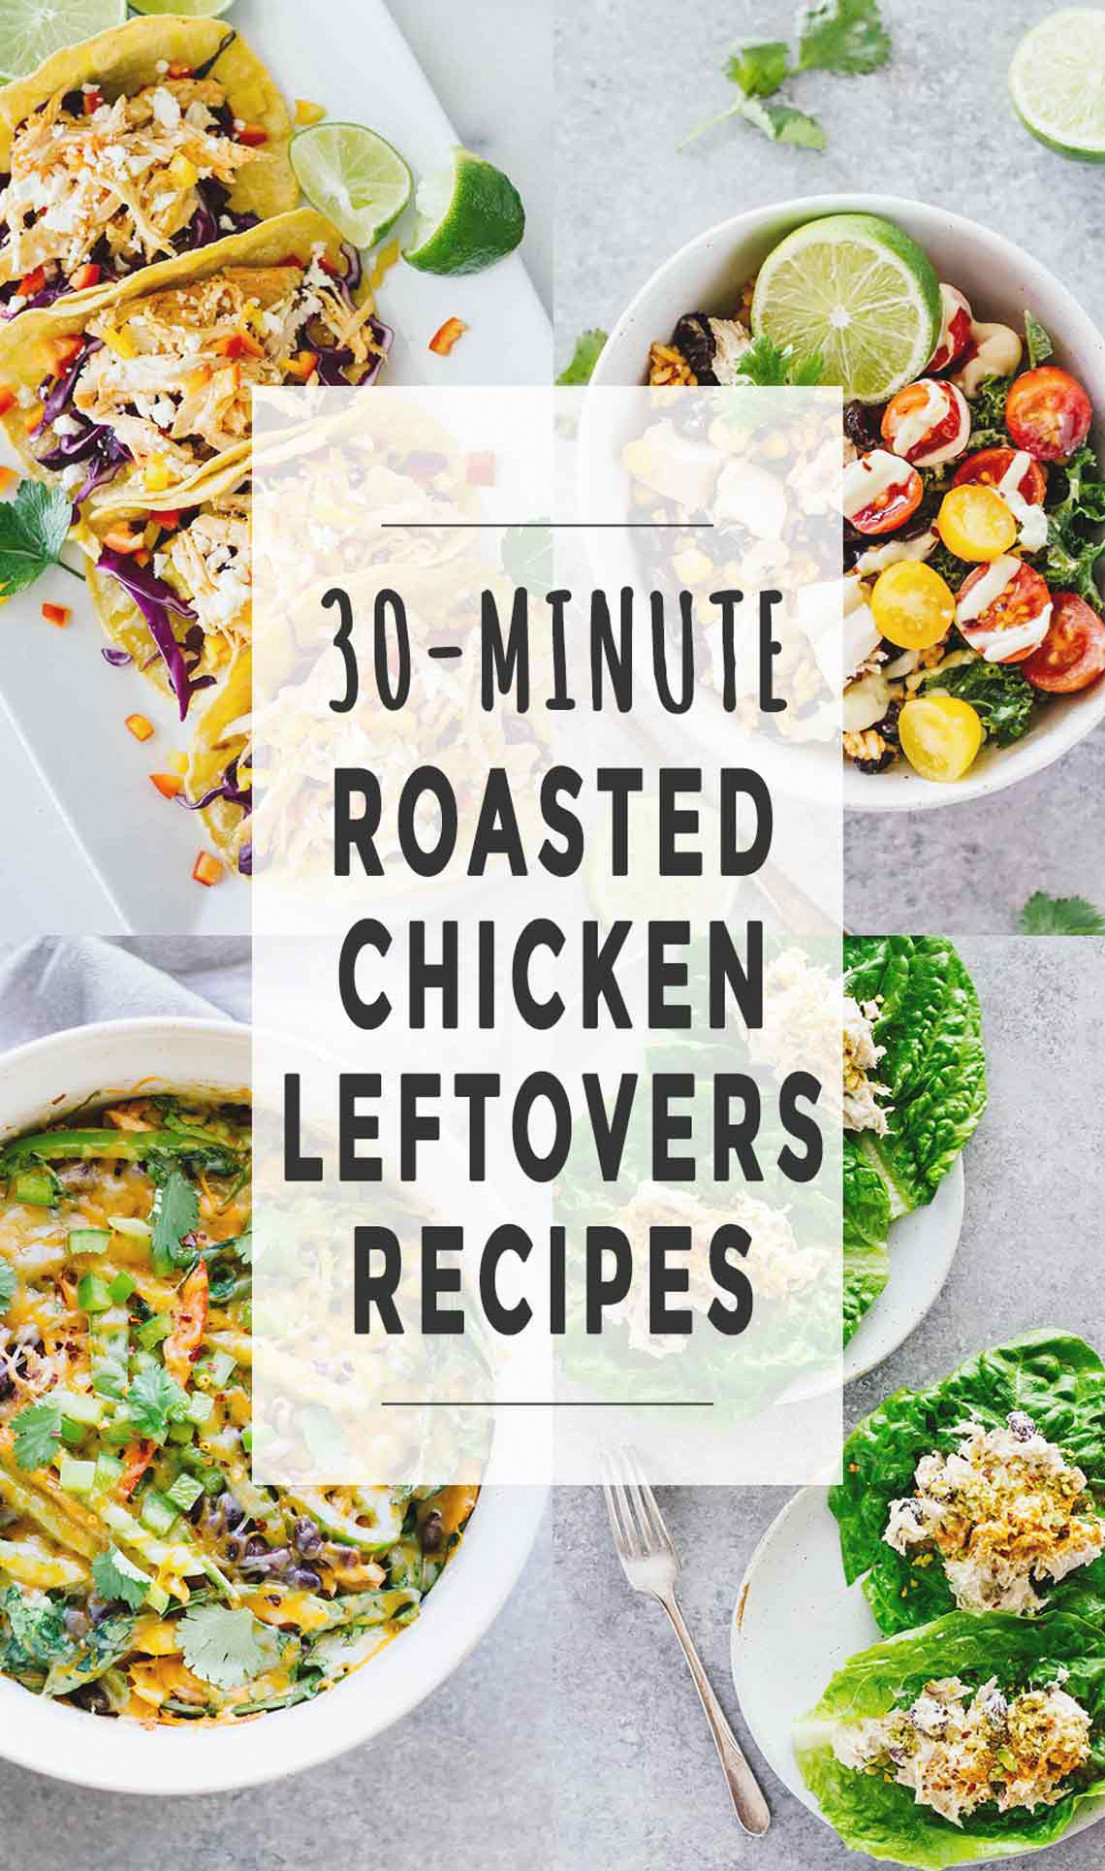 13-Minute Roasted Chicken Leftovers Recipes - Jar Of Lemons - recipes with leftover chicken